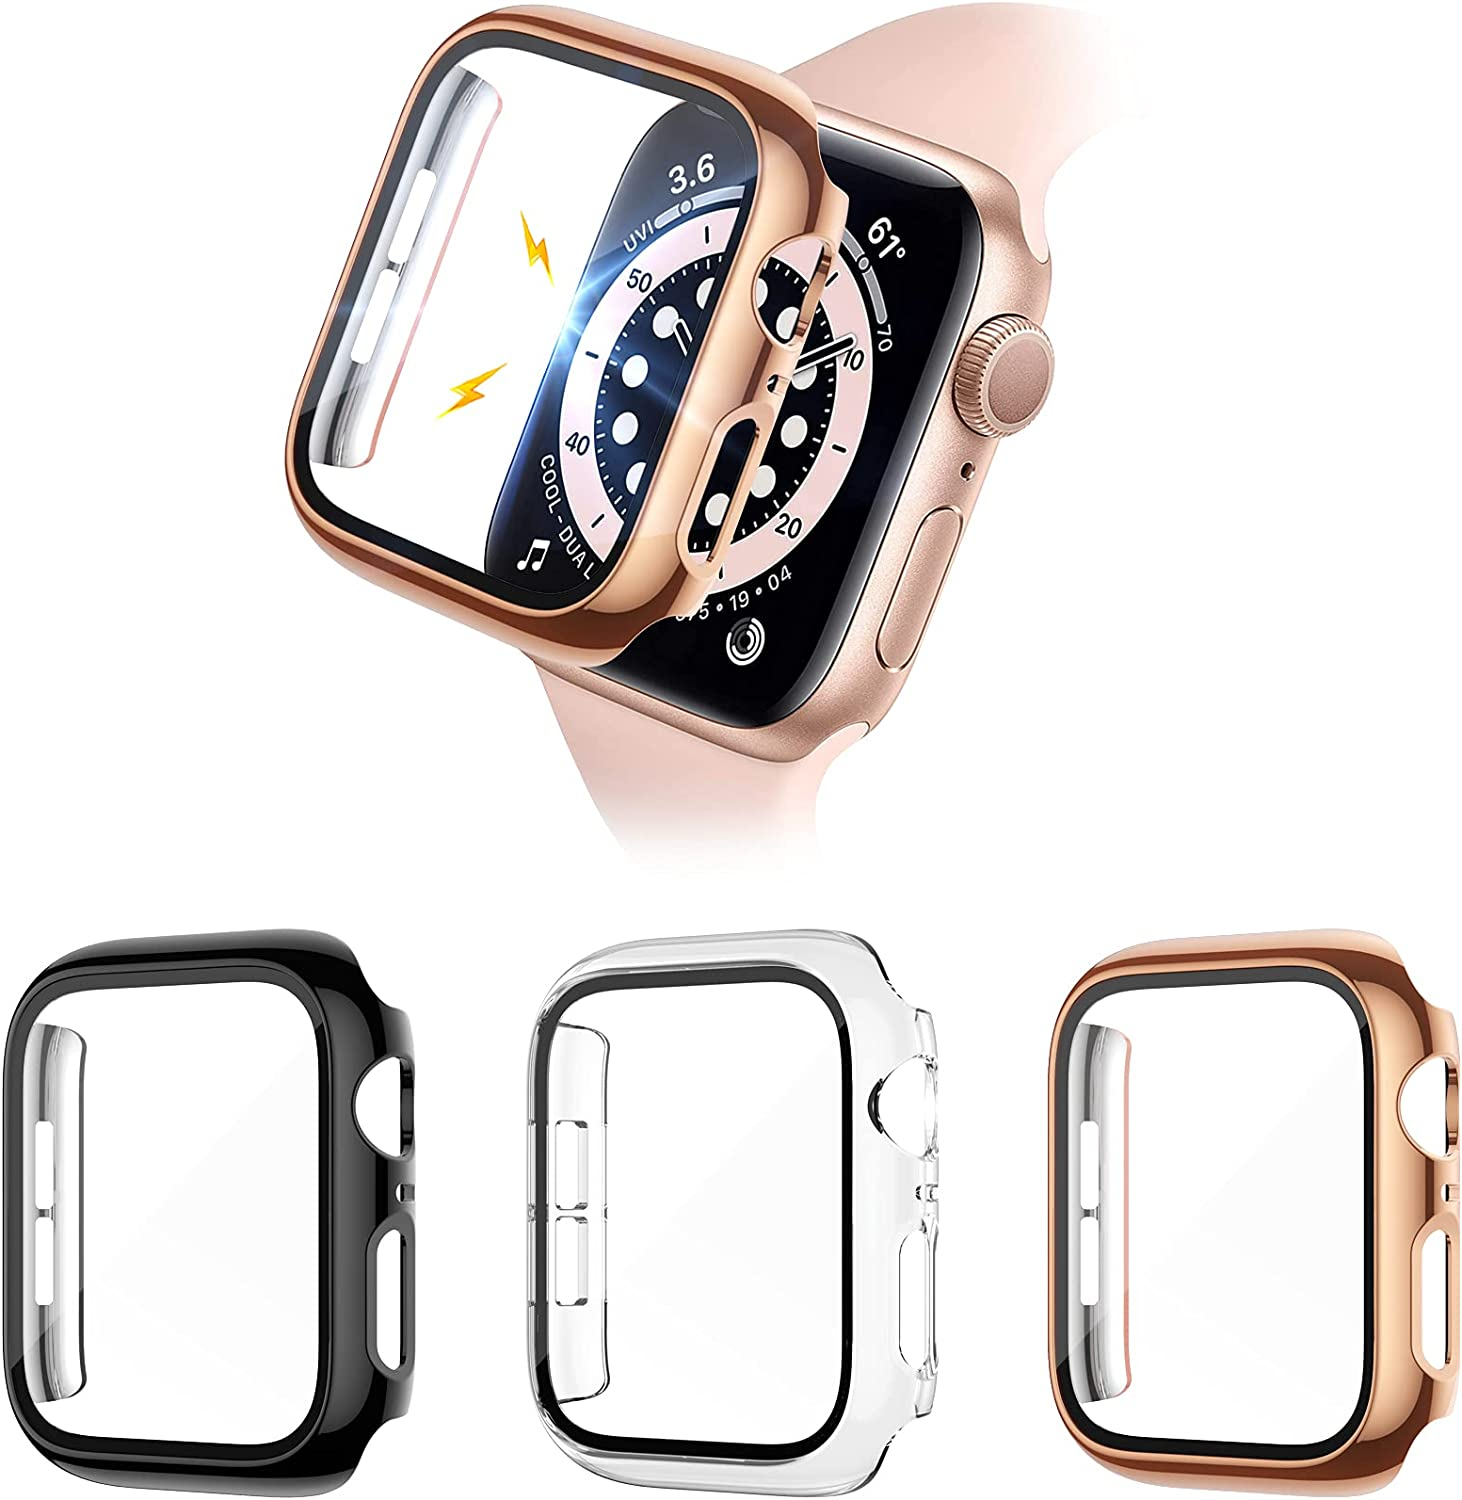 Liwin 3-Pack Tempered Glass Screen Protector Cases Compatible with Apple Watch SE/Series 6/5 / 4 44mm, HD Hard PC Protective Cover Compatible with iWatch Series SE / 6/5 / 4 (Black/Clear/Rose Gold)